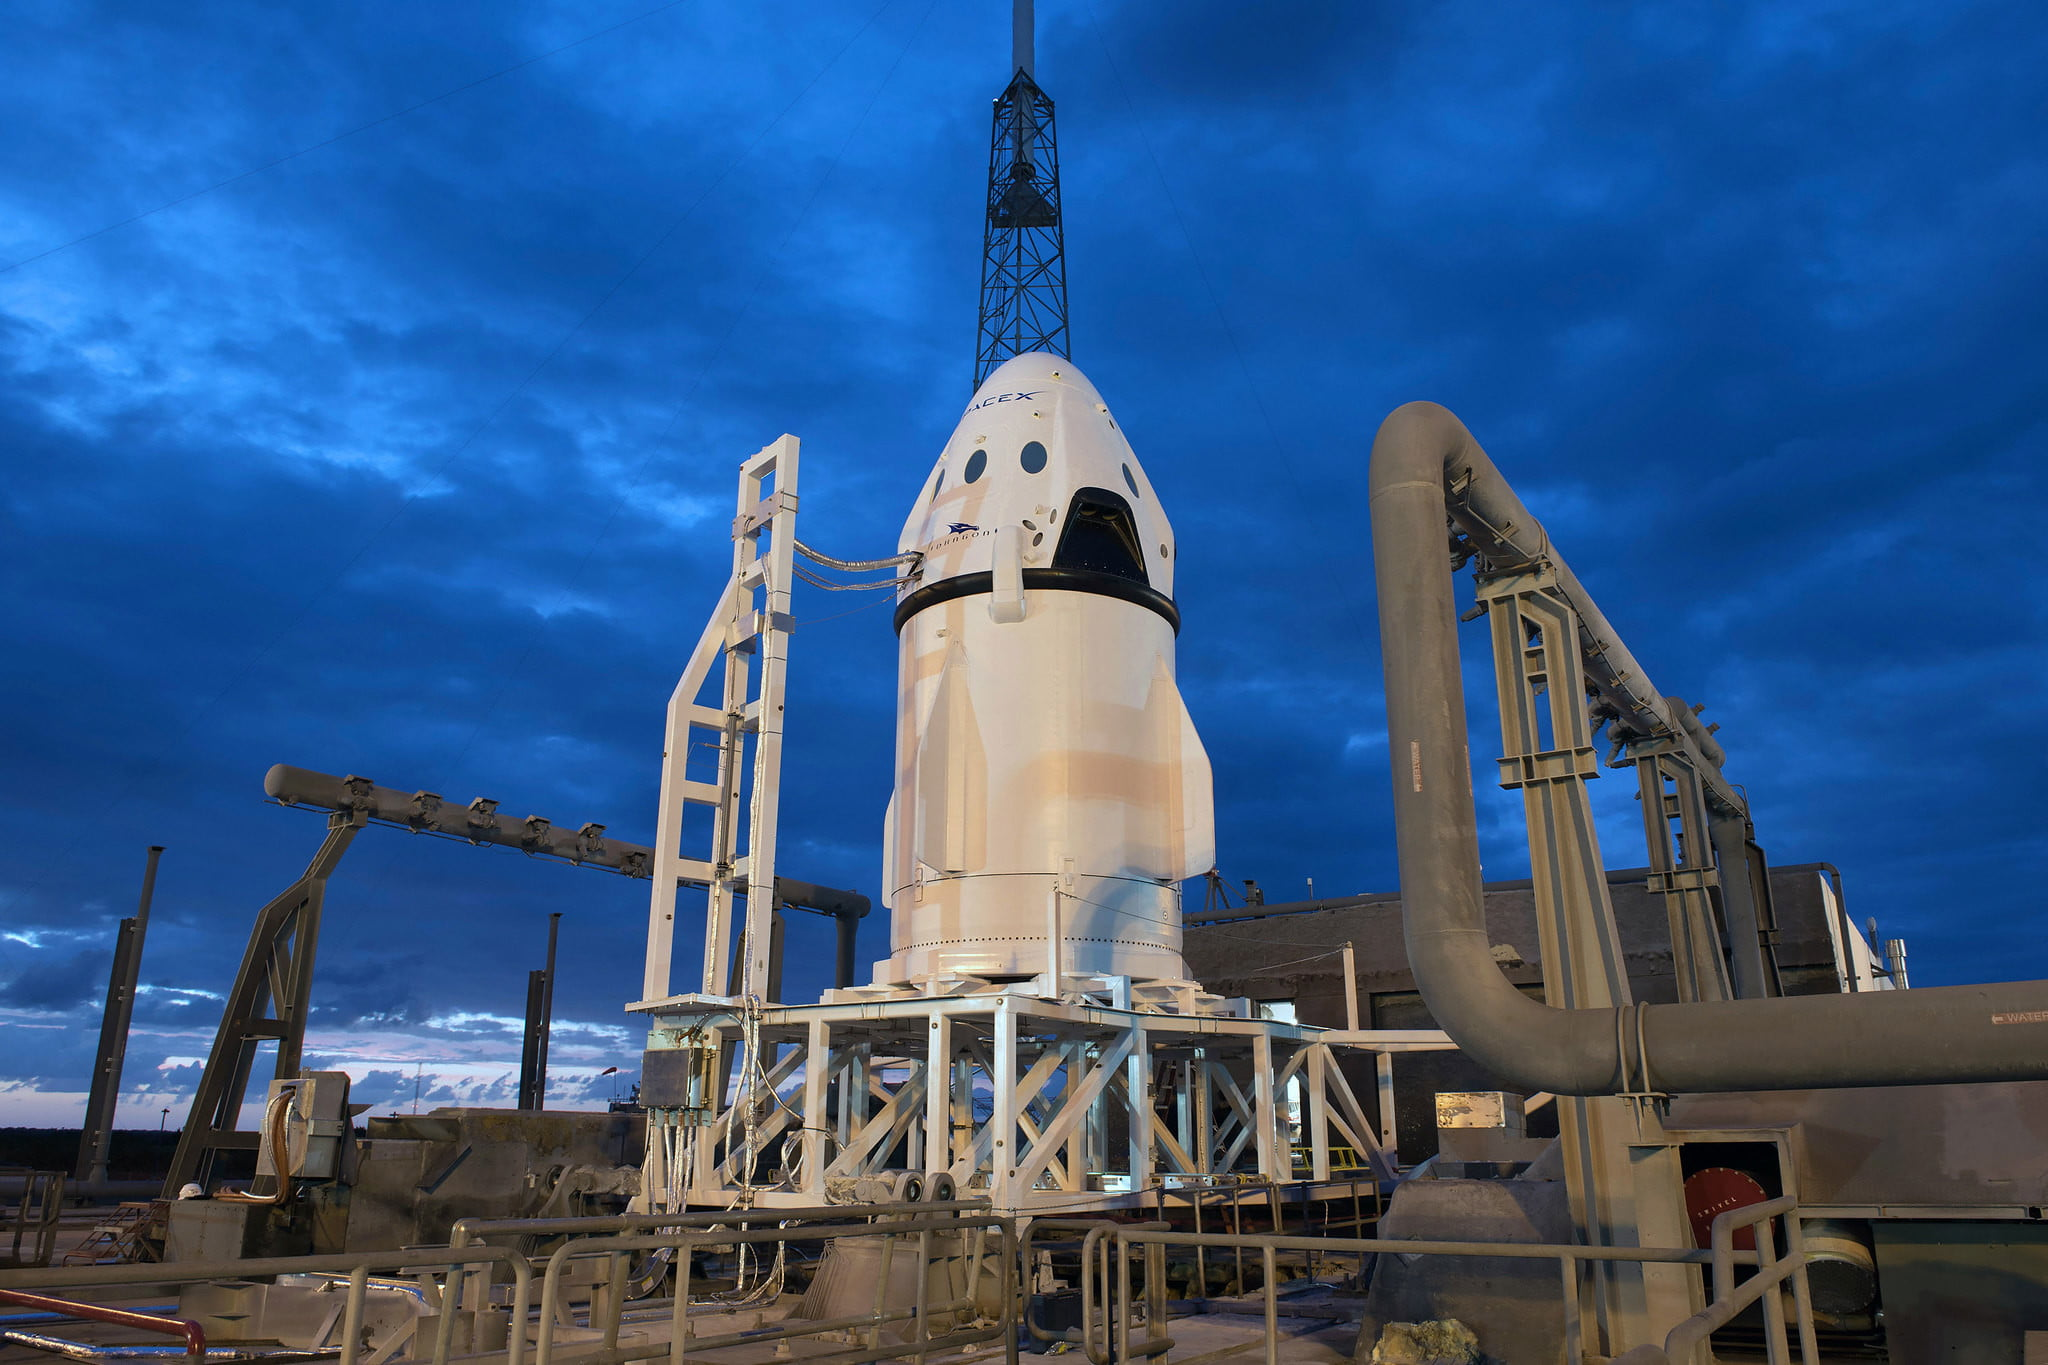 SpaceX will test its Crew Dragon capsule next week, following explosion in April